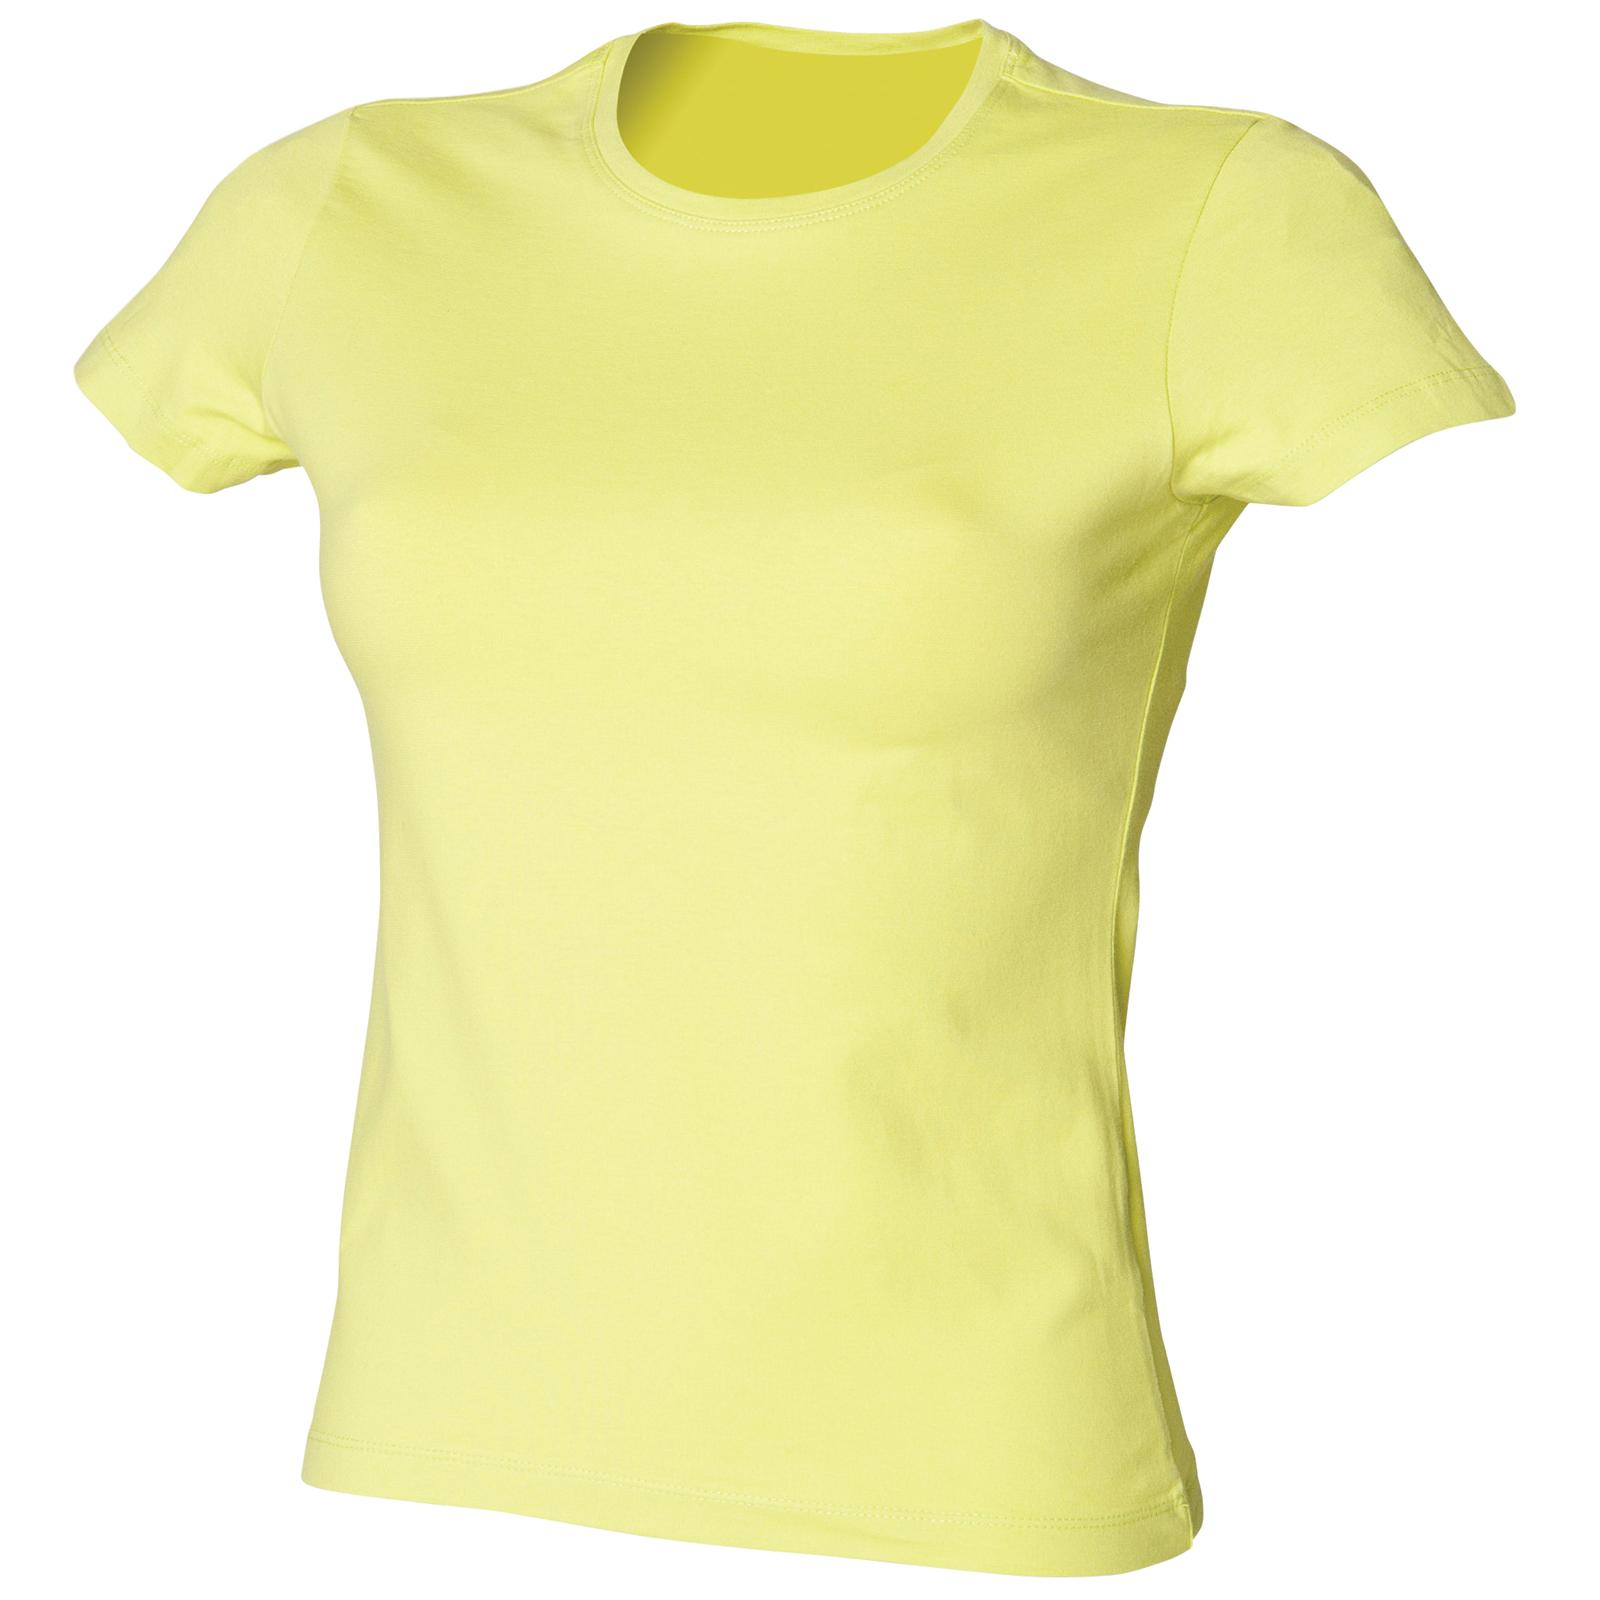 New-SKINNI-FIT-Womens-Ladies-Stretch-Fitted-Crew-T-Shirt-in-25-Colours-S-XXL